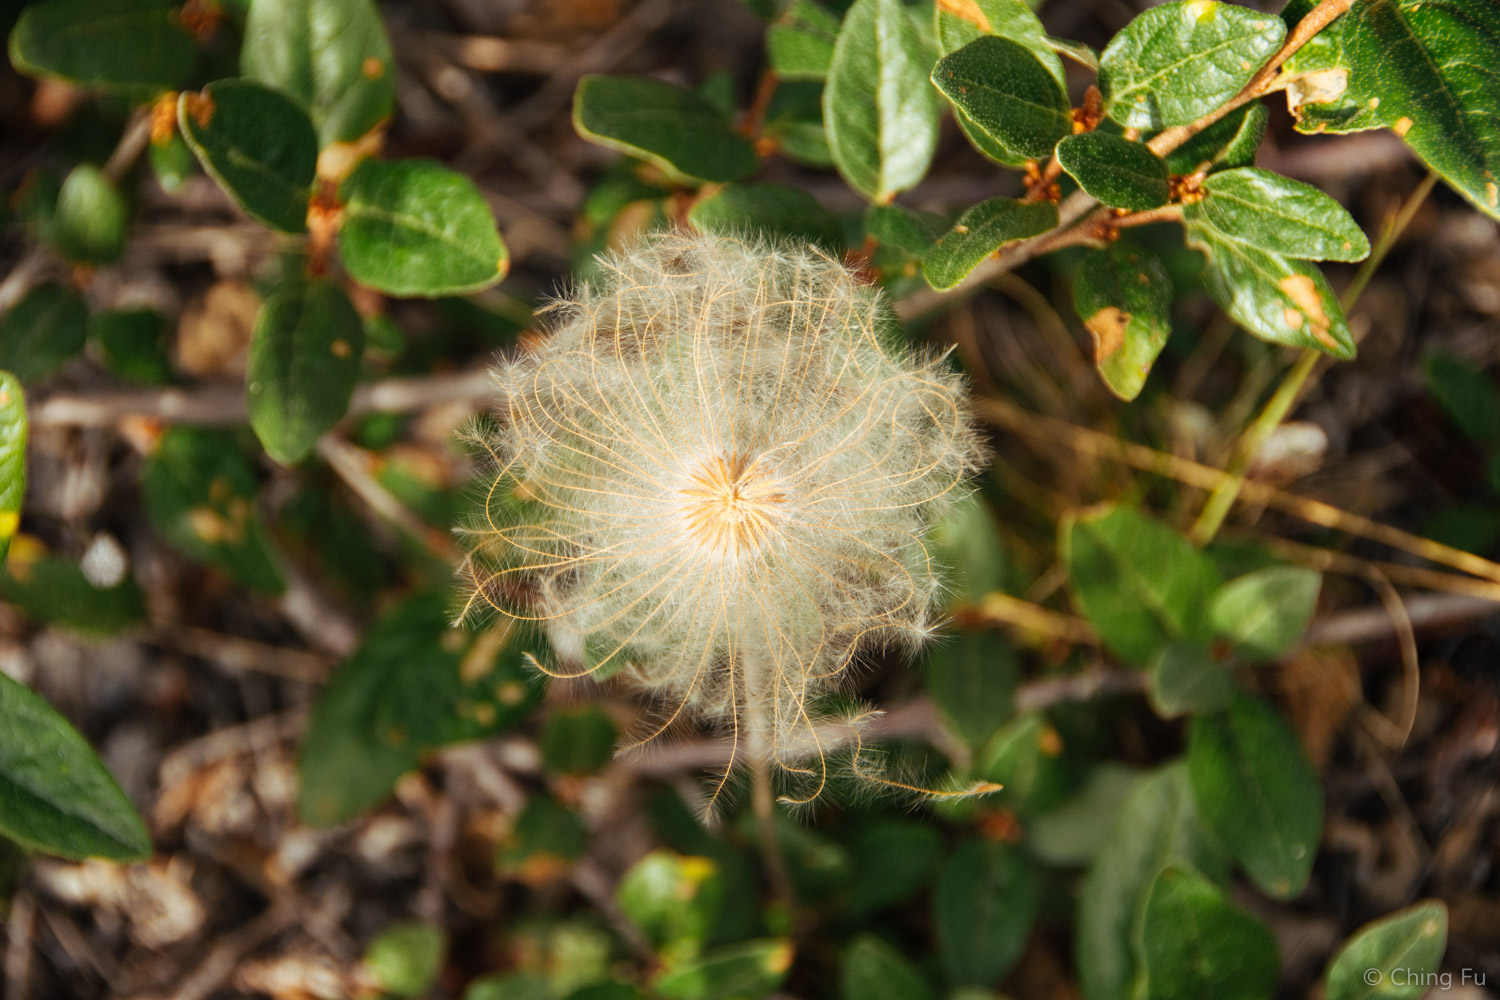 The yellow dryas remind me of something out of Dr. Seuss land. When in bloom the flowers have yellow petals. But when it's time to seed, the white wispy hairs take over the flowerhead and slowly unfurl. Yellow dryas are like the dandelion of Yukon!